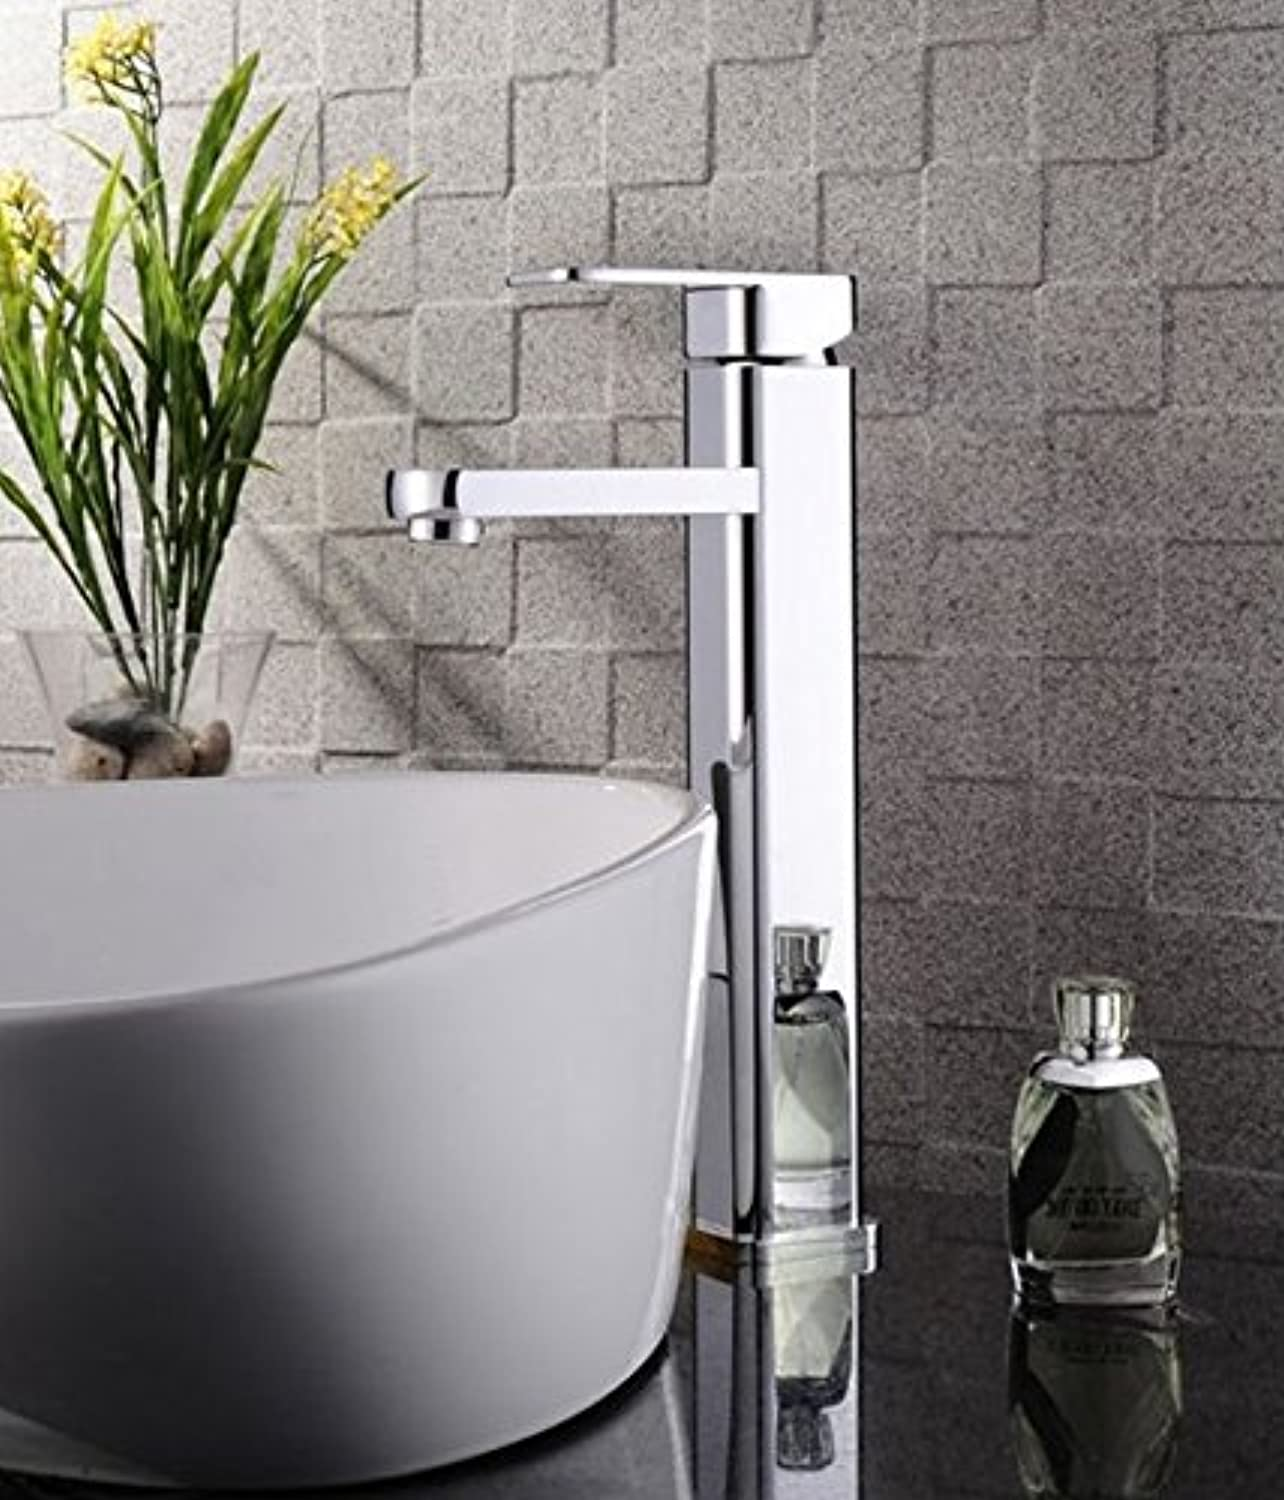 SADASD Contemporary Bathroom Full Copper Basin Faucet Pull Plus High-Basin Sink Mixer Tap Ceramic Valve Single Hole Single Handle Cold Water With G1 2 Hose